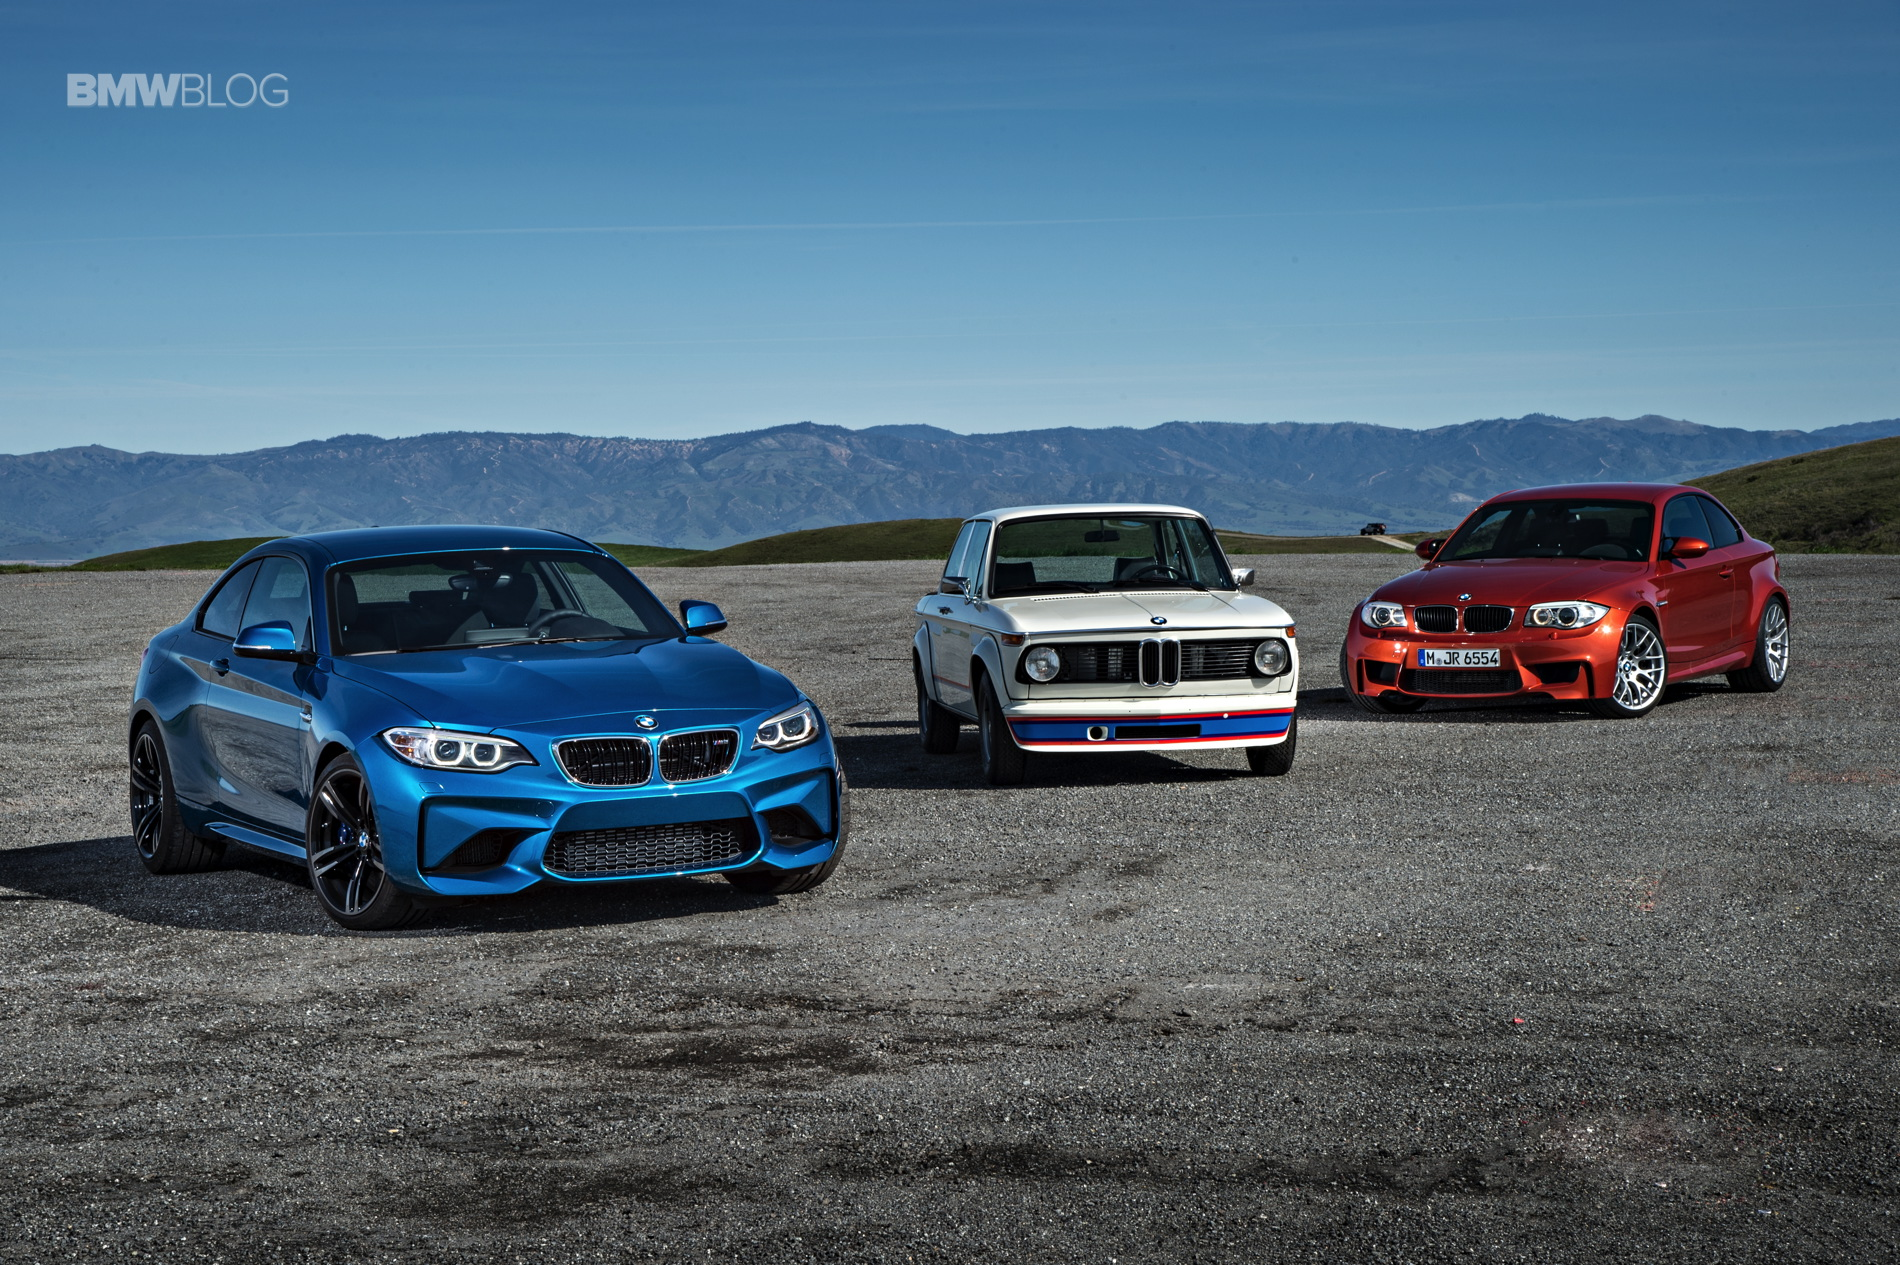 Bmw 2002 Tii Turbo Vs Bmw M2 Vs Bmw 1m